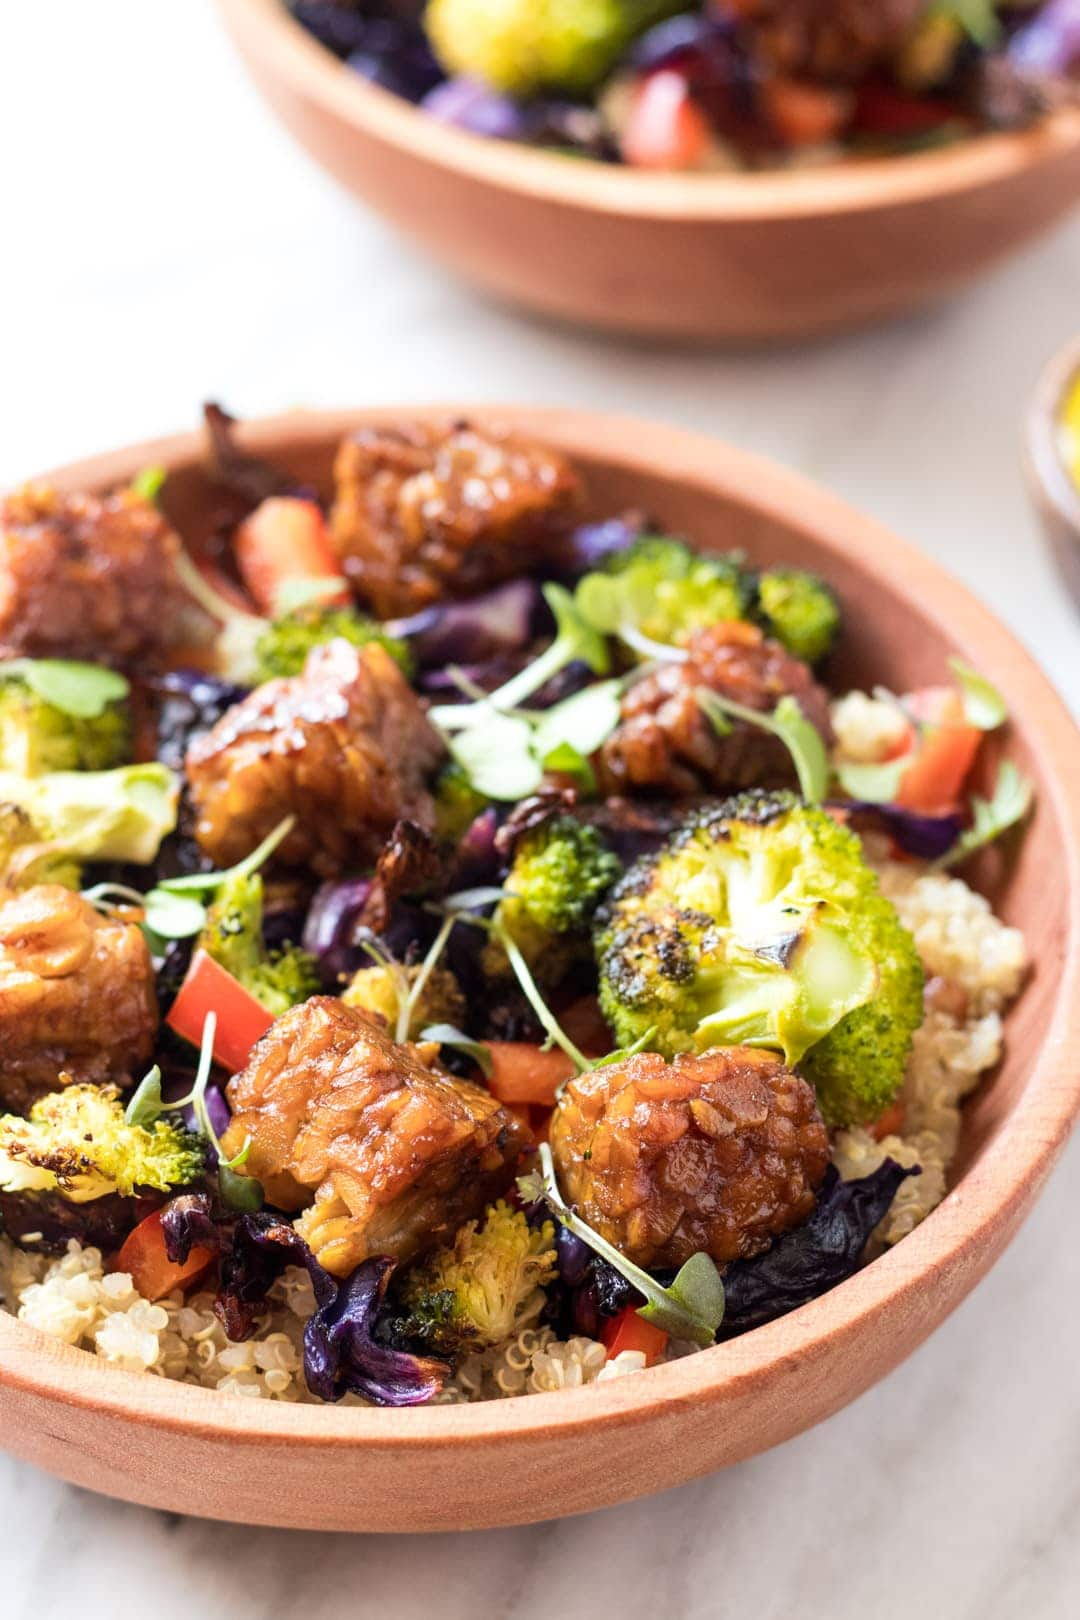 A close up low FODMAP rainbow bliss bowls filled with quinoa, roasted broccoli, red cabbage and red pepper (in low FODMAP servings). They're also topped with optional tempeh.